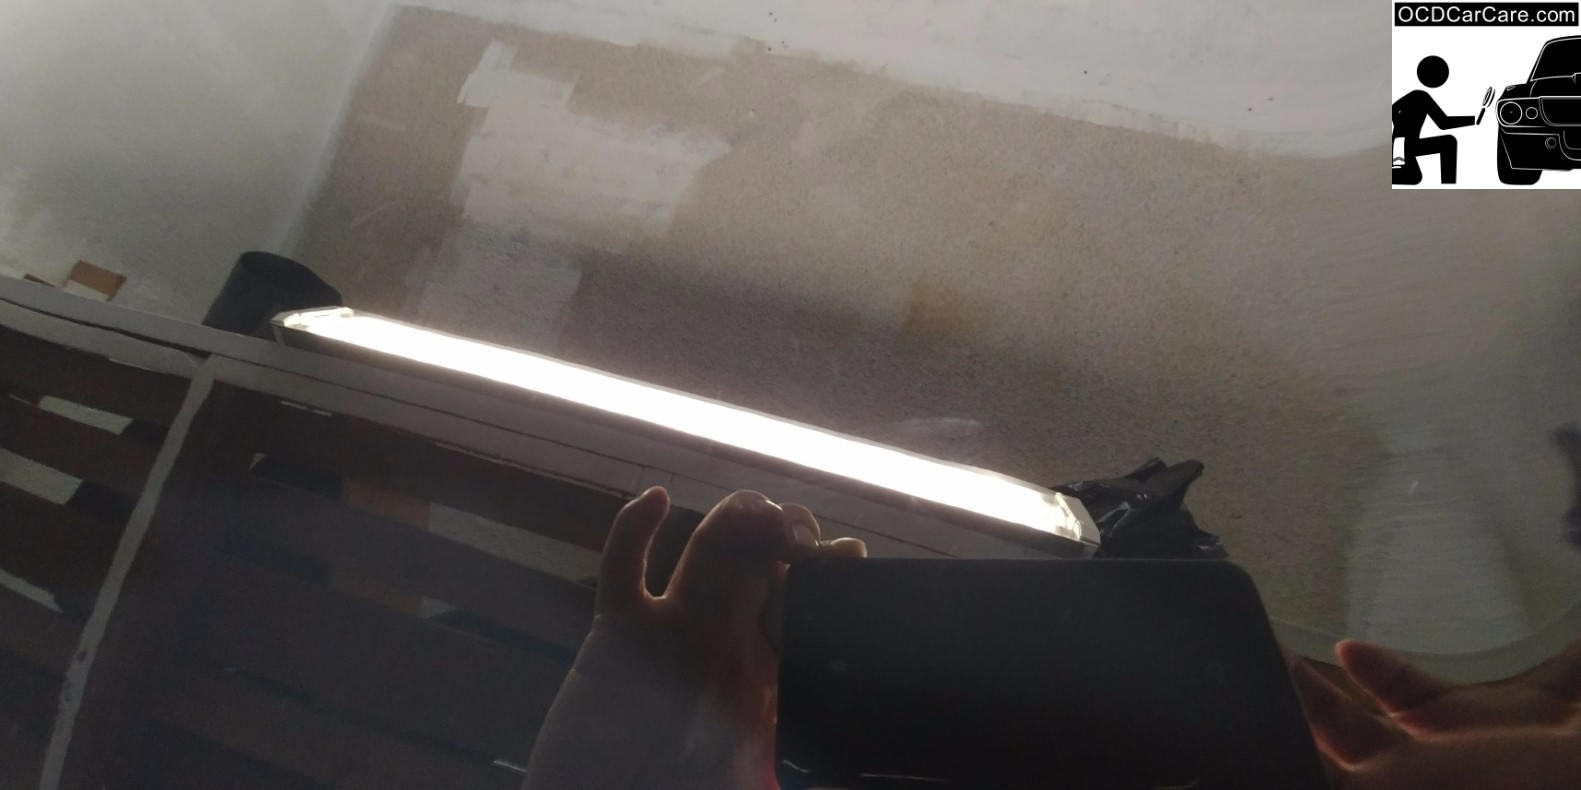 3rd picture of FeynLab Self Heal Lite Nano Coating Fixing small scratches in Clear coat after paint correction detail by OCDCarCare Los Angeles